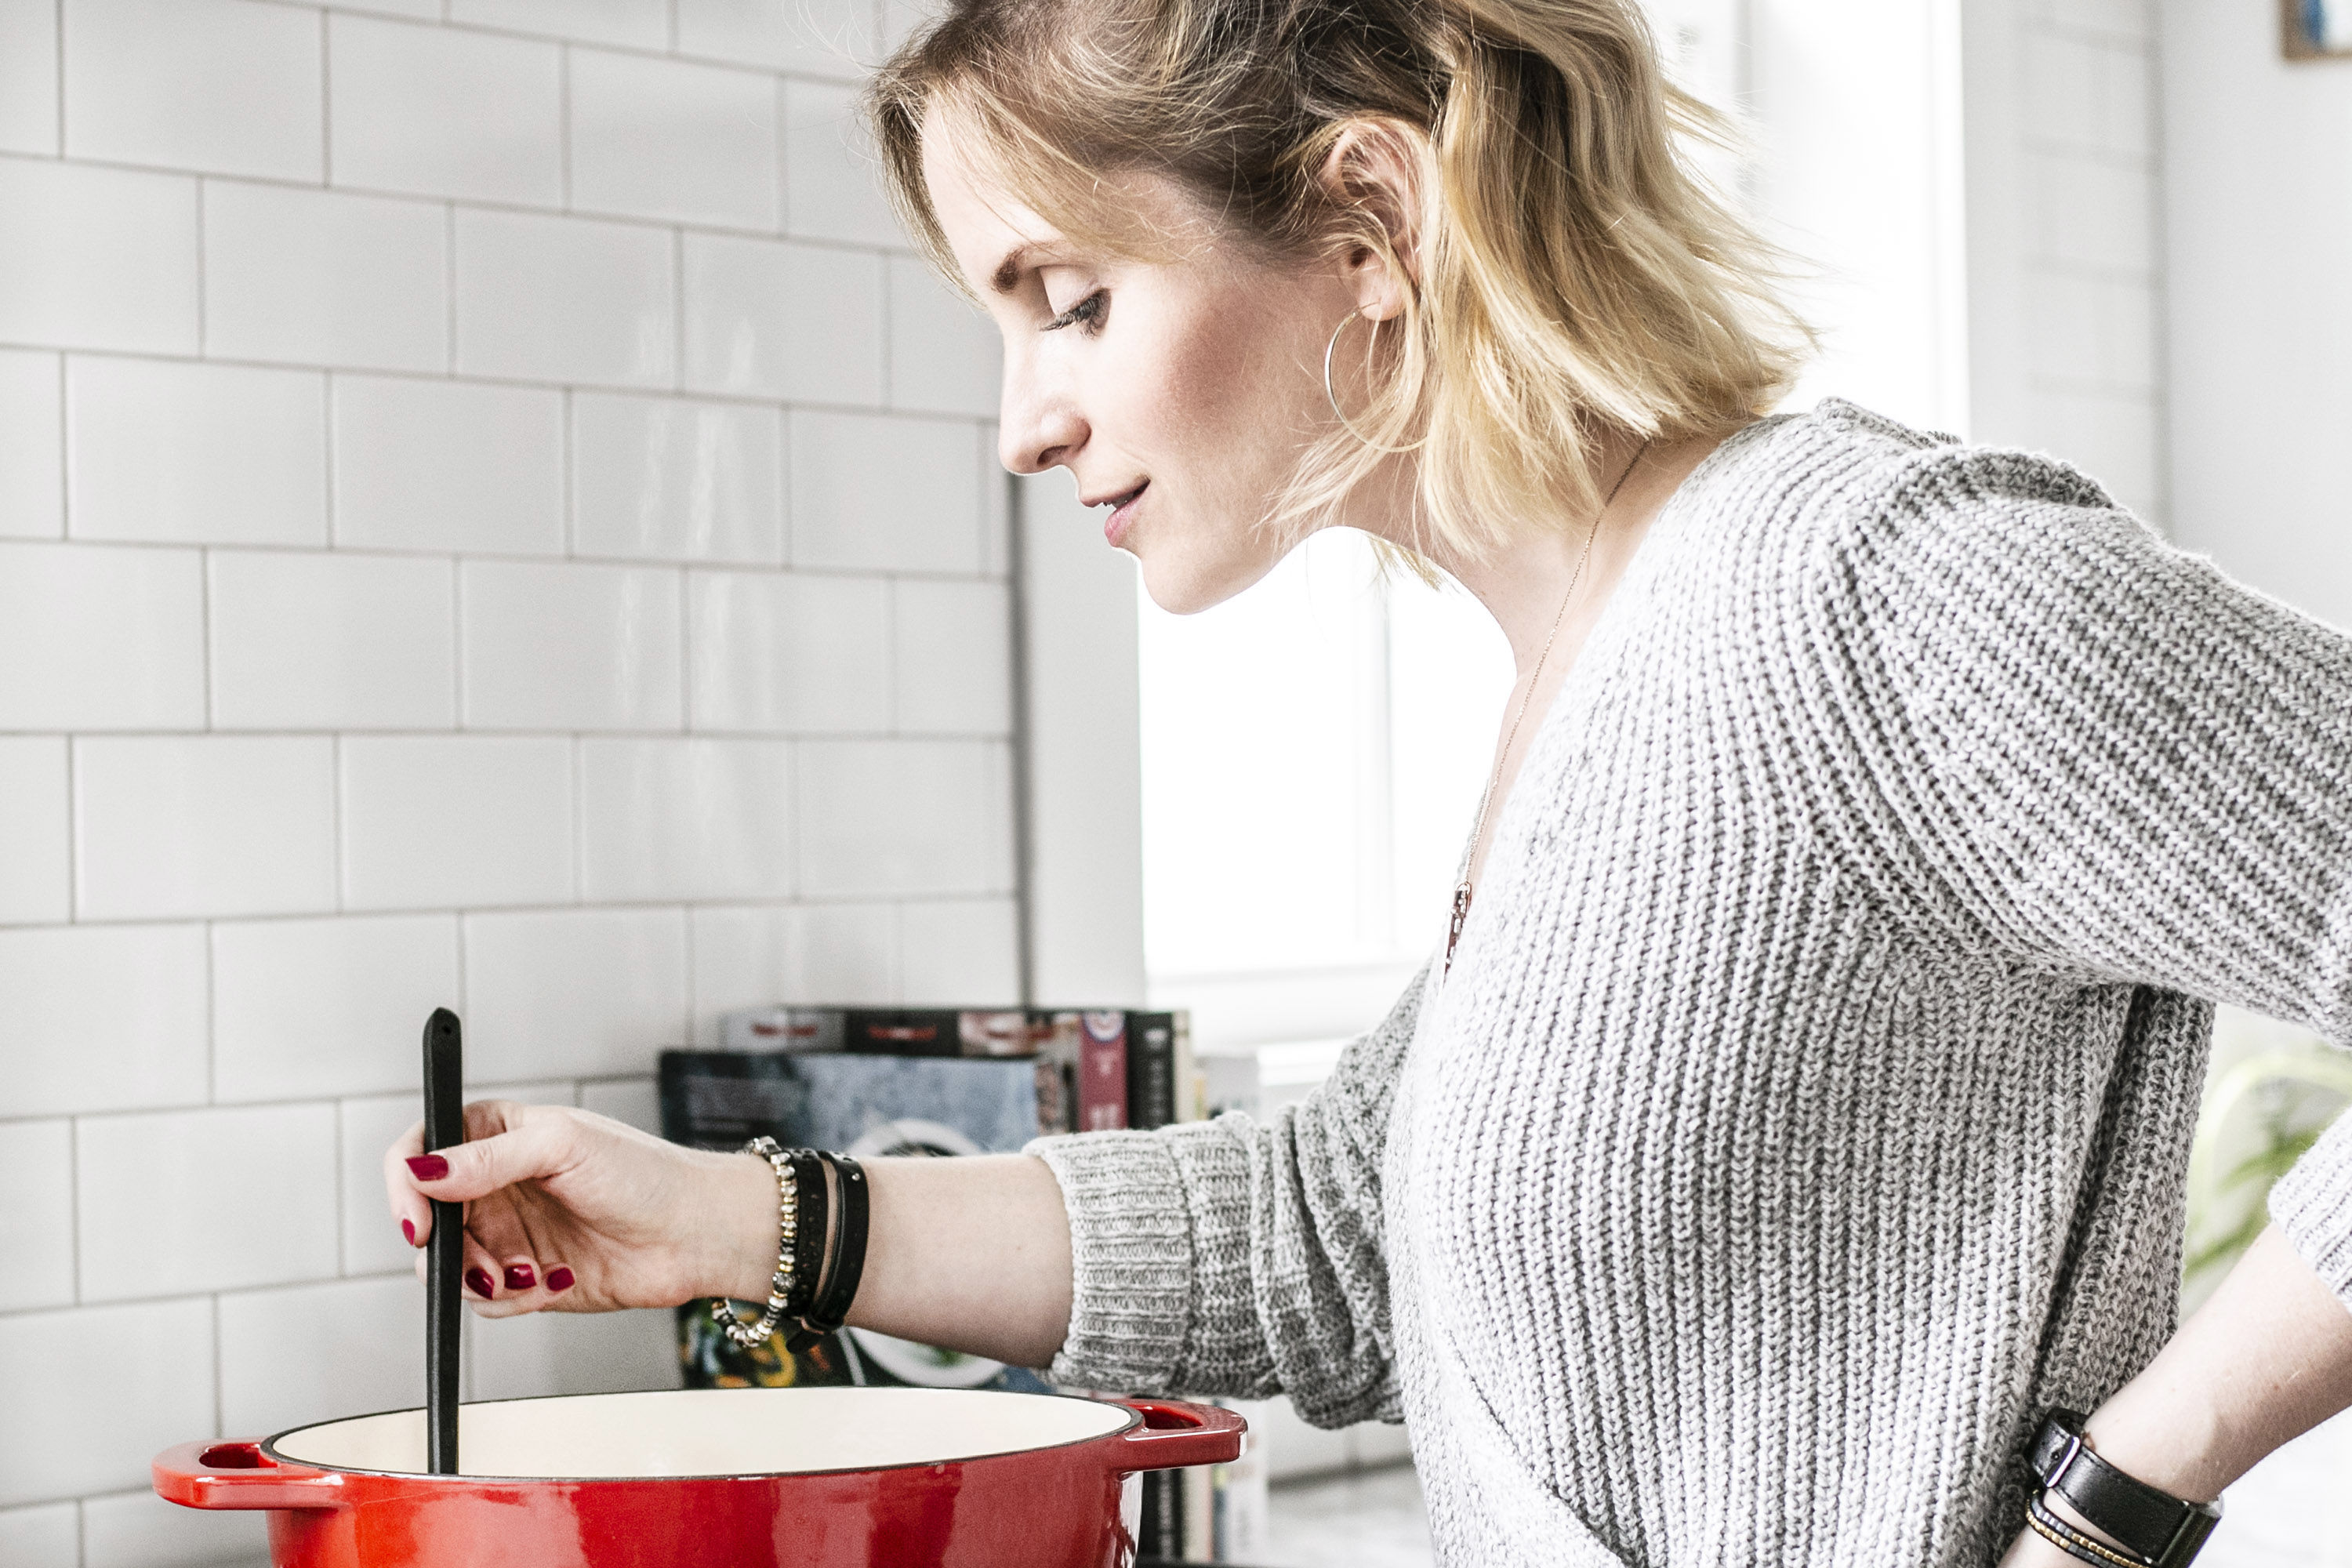 3 Mistakes That Are Costing You Tons of Money at the Grocery Store, According to a Budget Food Blogger